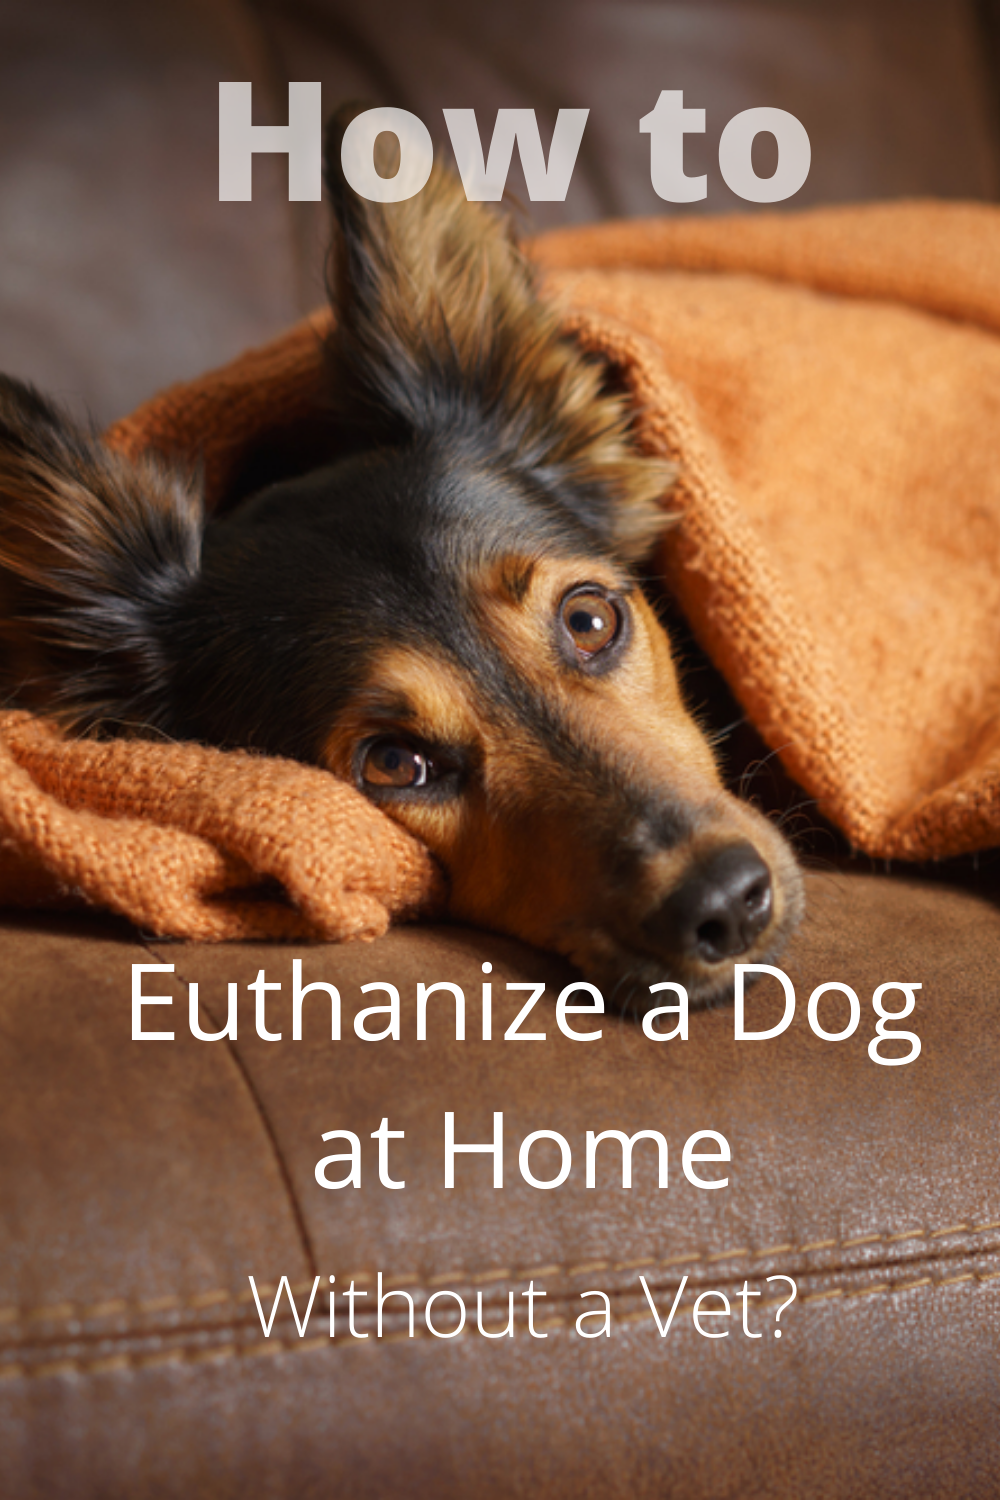 How To Euthanize A Dog At Home Without A Vet In 2020 Vets Dogs Pets